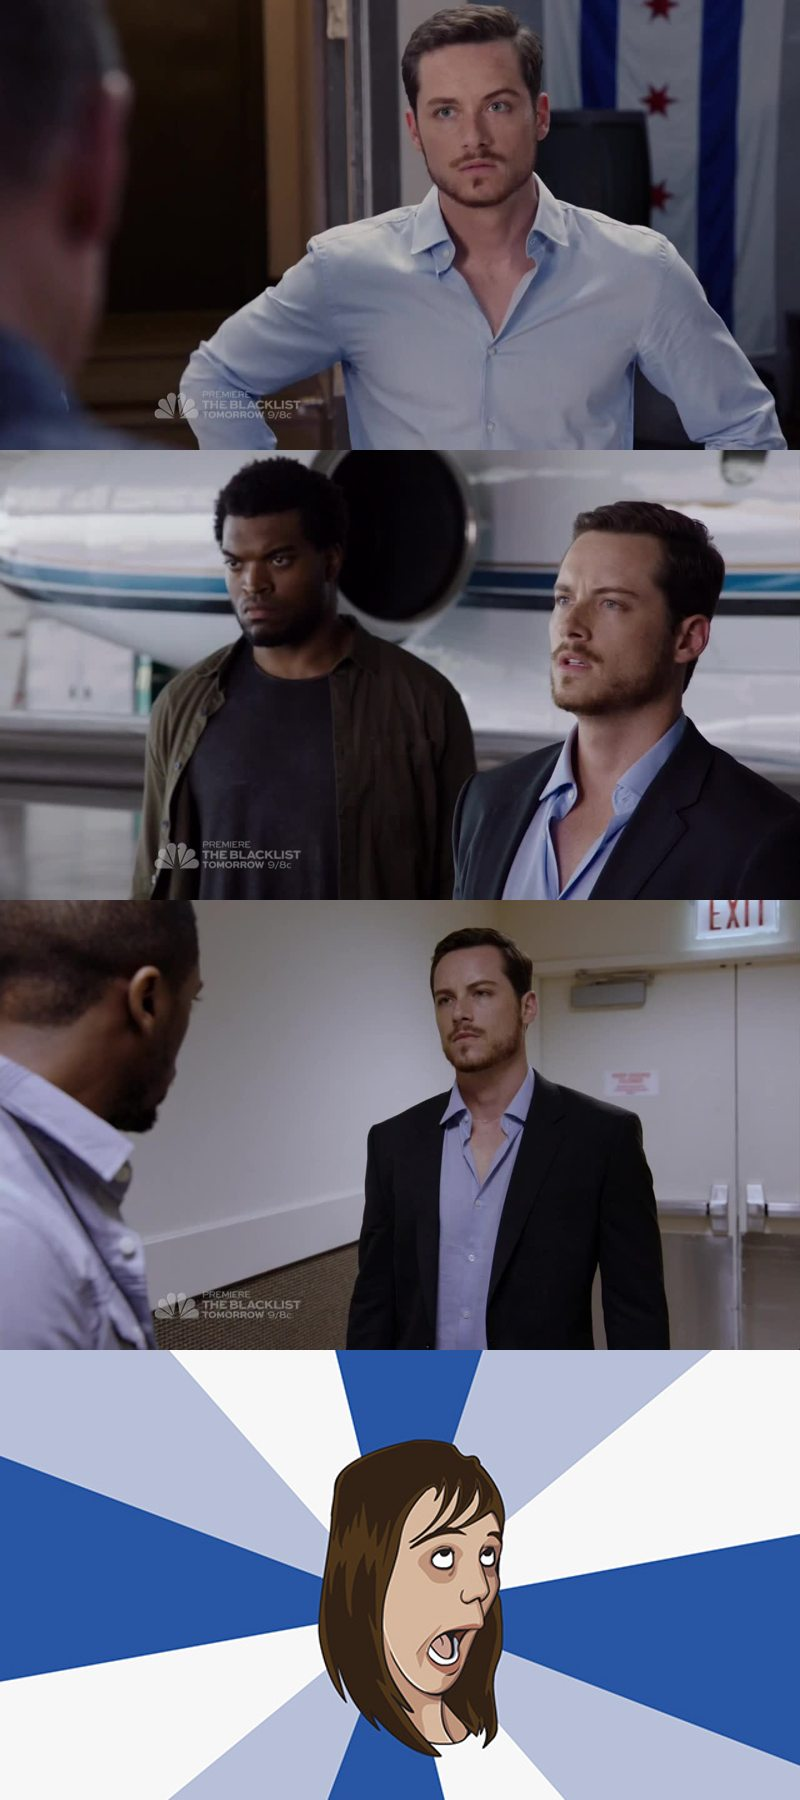 Amazing first episode 👏.. and let's all appreciate how hot Halstead is 😍